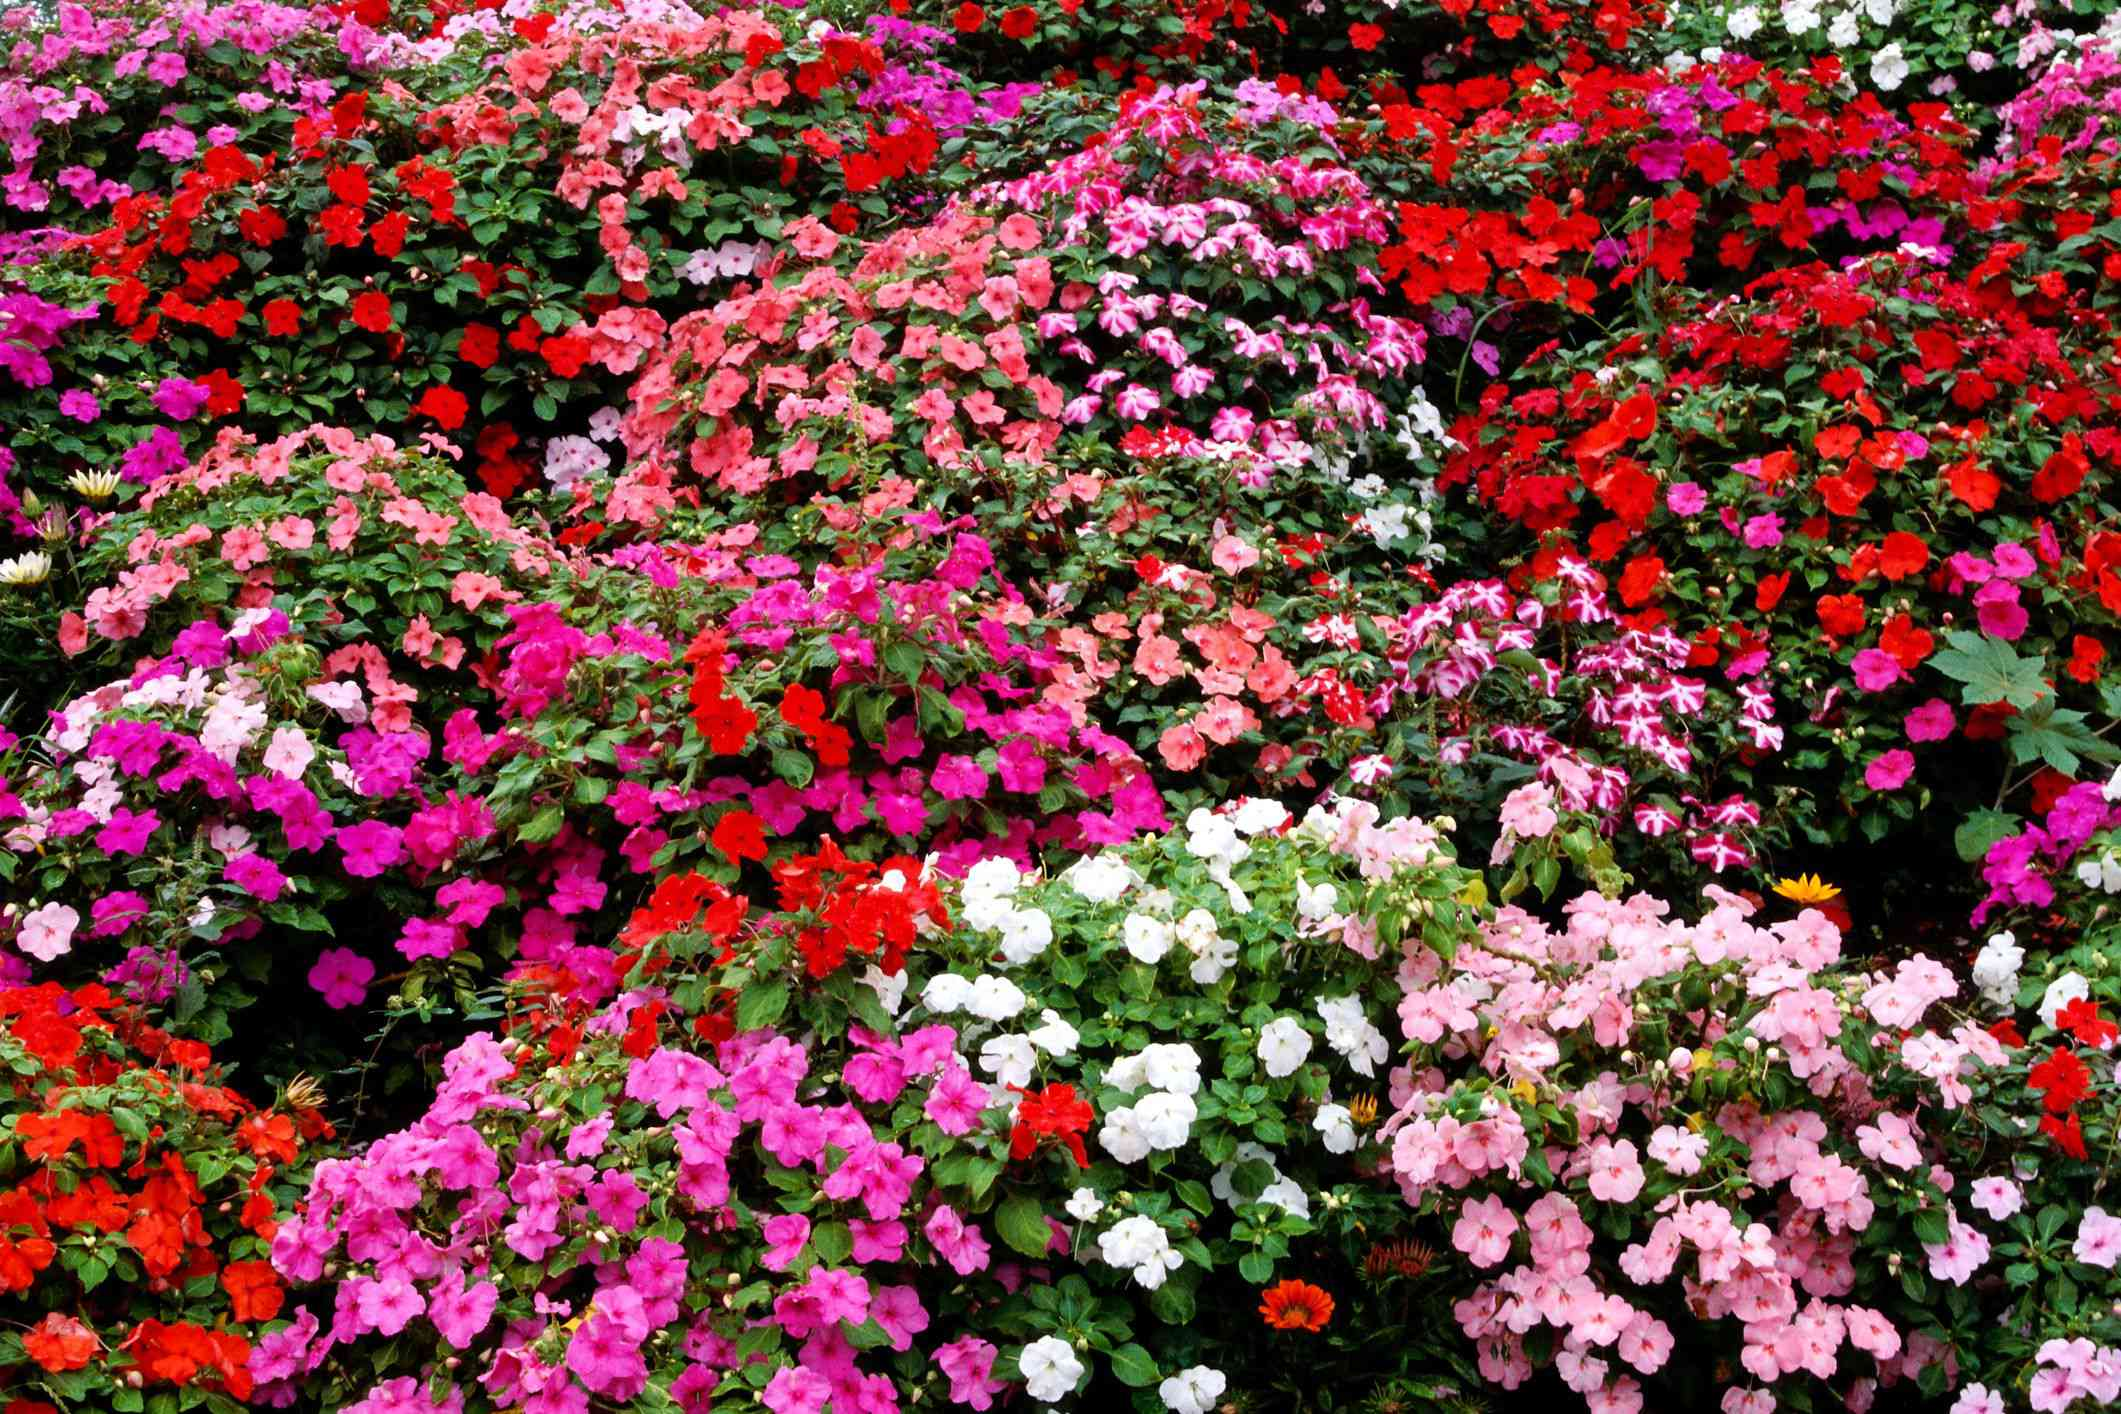 impatiens as a ground cover